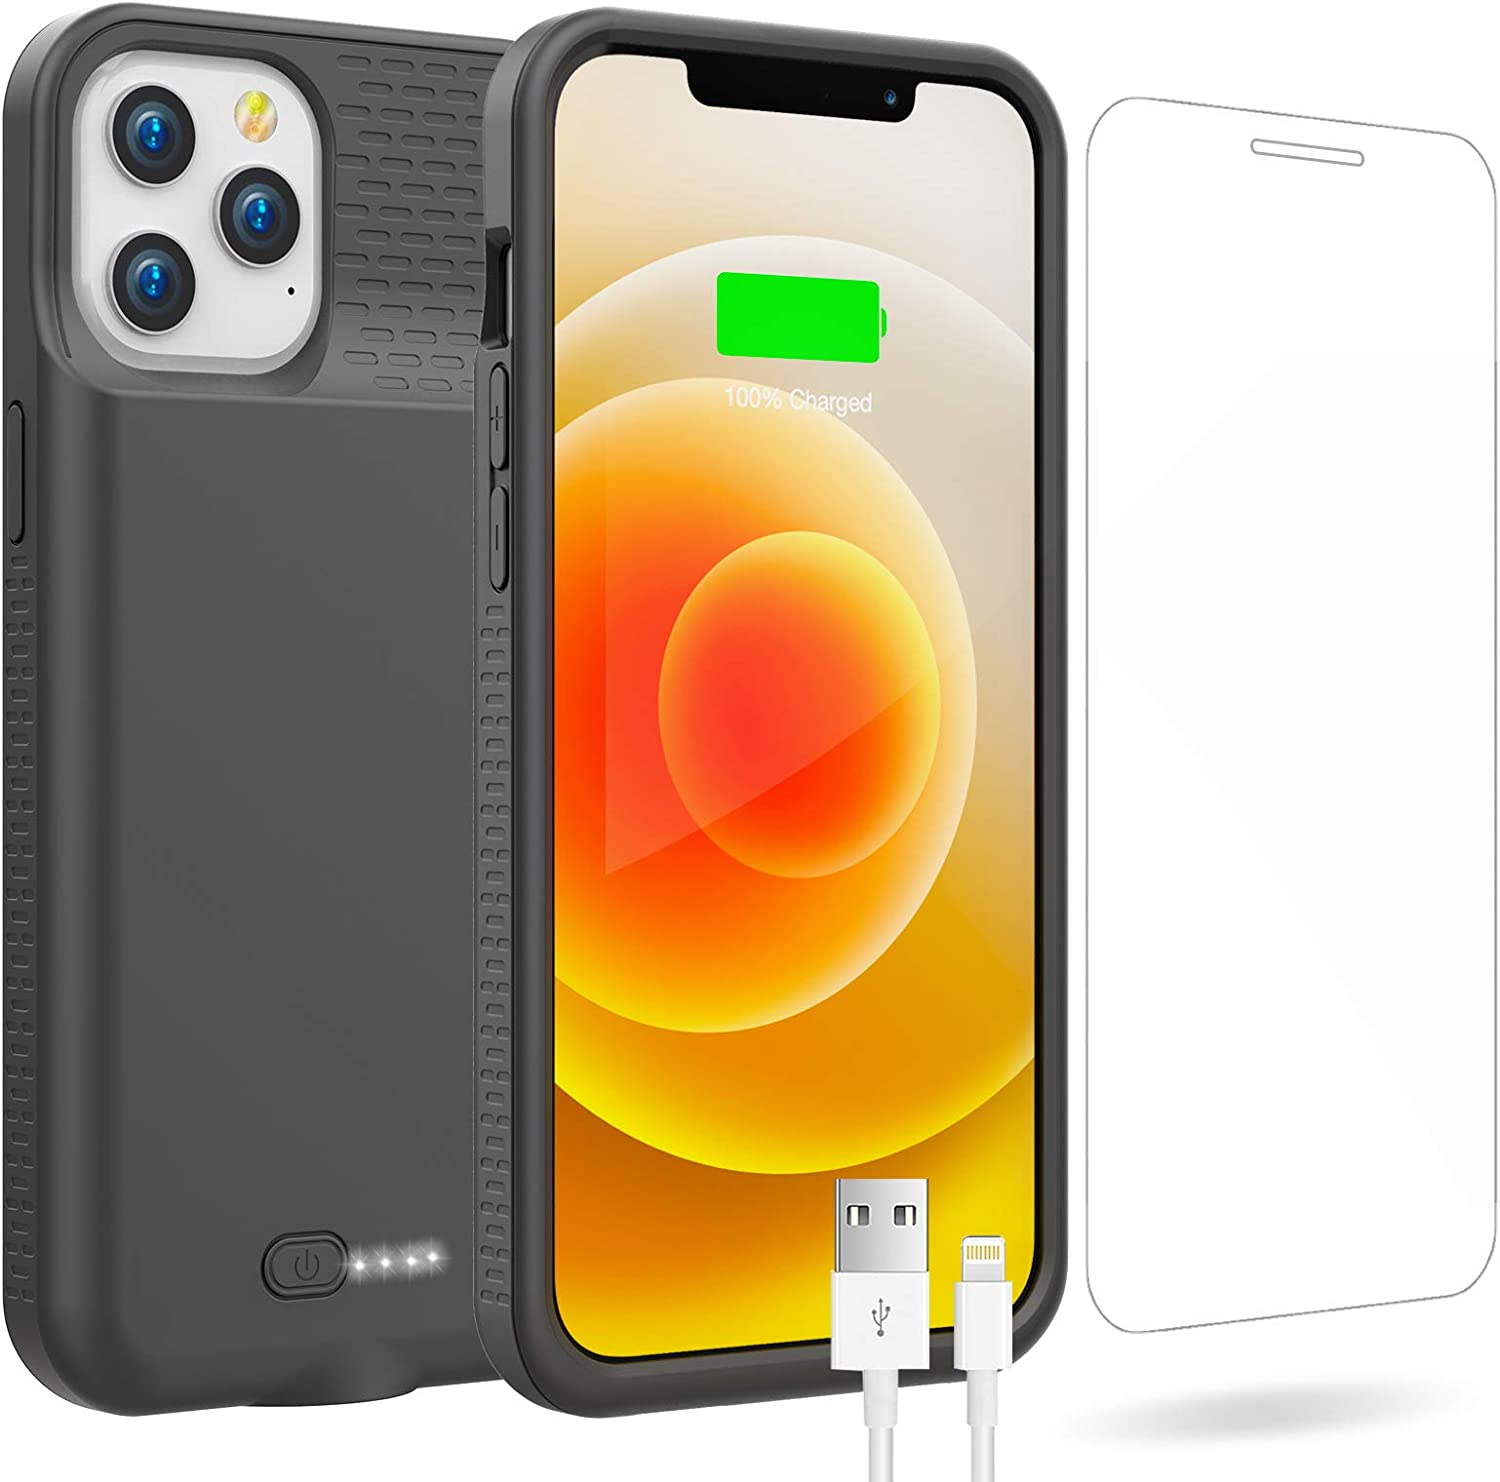 Battery Case for iPhone 12 Pro Max, 6000mAh Portable Charging Case for iPhone 12 Pro Max, Rechargeable Backup External Battery Pack Extended Battery Protective Charger Case, (6.7inch)(Black)